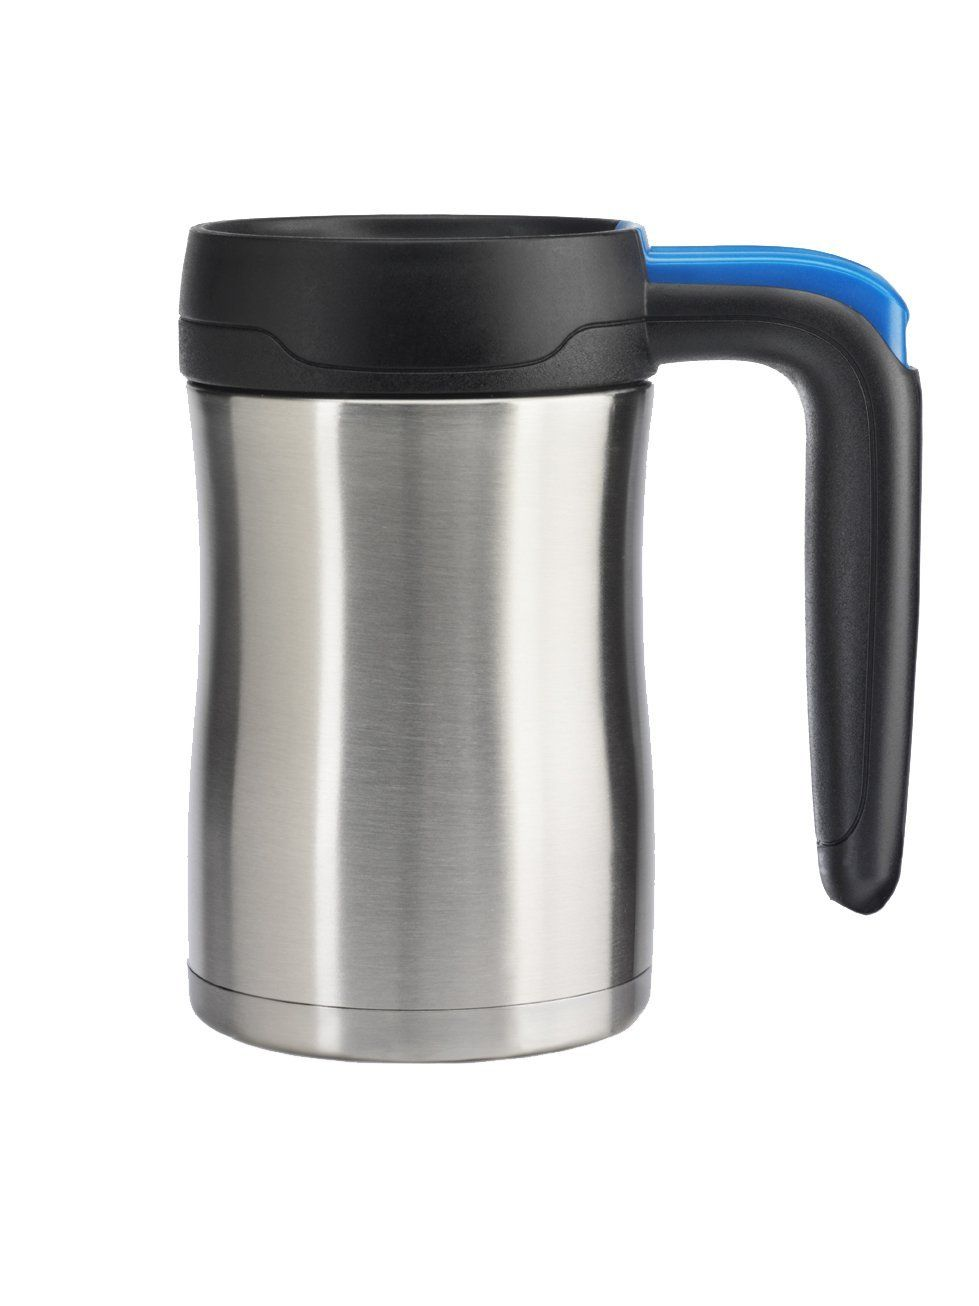 Another Small Travel Mug With Handle That Fits The Keurig Mini Contigo Fulton Autoseal 12 Ounce Desk